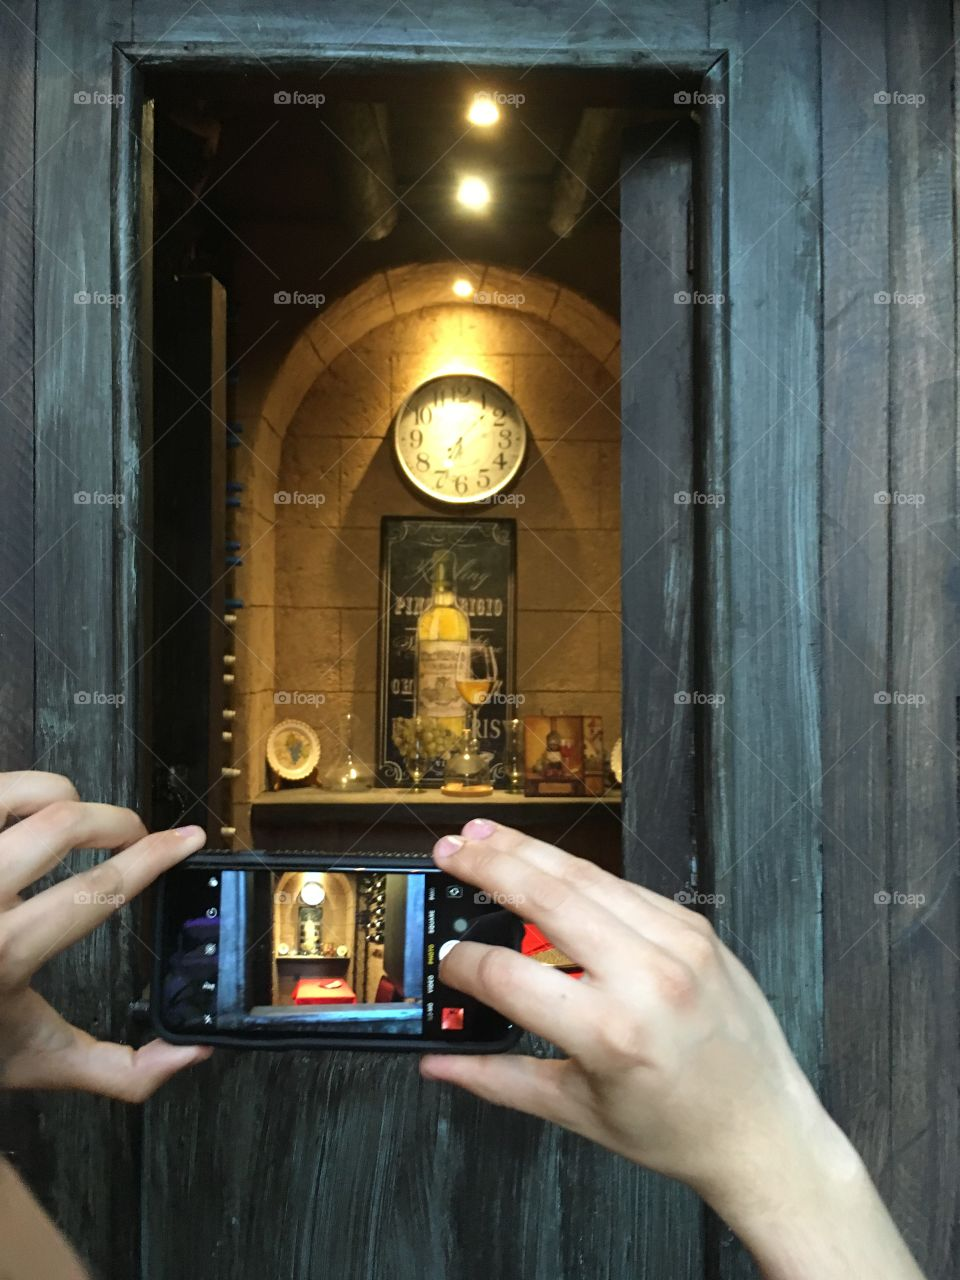 Taking a photo of someone taking a photo of an elegant wine room